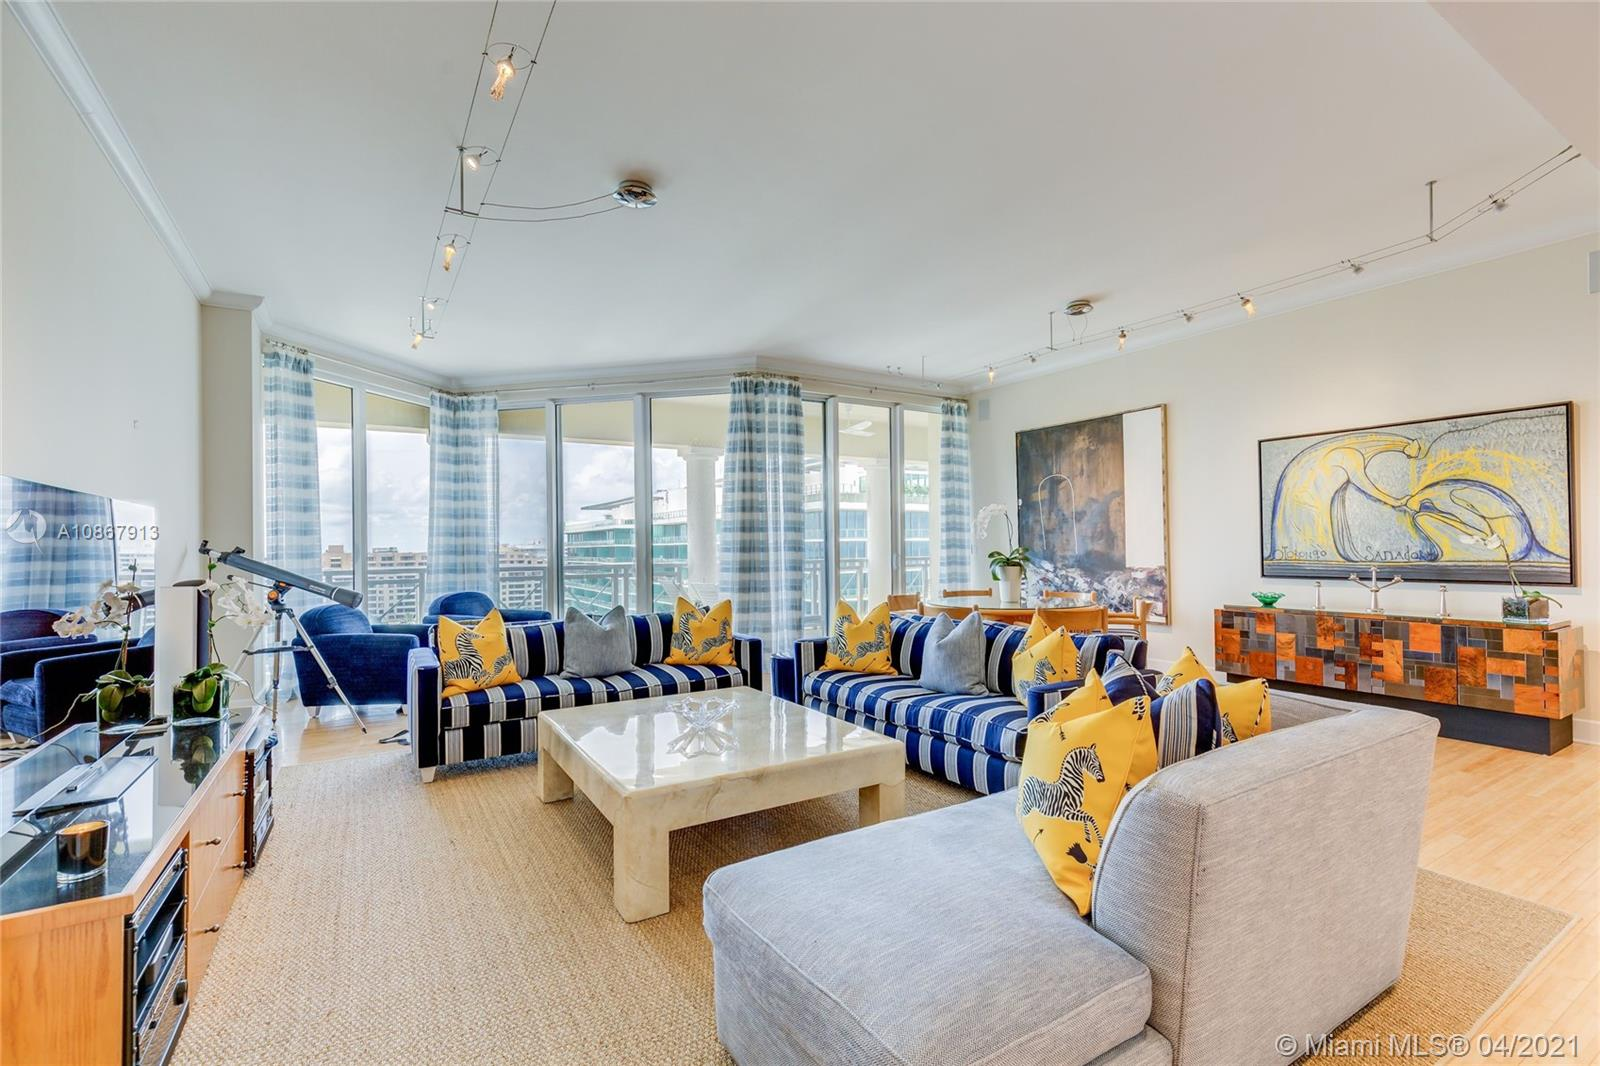 Come and enjoy the ocean and Miami skyline views from this unique 3 bedroom, and 4 full bathroom penthouse unit. The unit is highlighted by its incredible amount of space and access to natural light throughout. The penthouse features 12 foot ceilings- ideal for art collectors, vast closet space, a large living area perfect for entertaining. Recessed lighting, a sound system throughout, bamboo floors, equipped with Viking and Subzero appliances. Private elevator foyer with special glass doors to enjoy views of the Atlantic Ocean as soon as you enter. Condo has a plethora of amenities including an exercise room, heated pool, and private beach access. Great location, within walking distance to  restaurants and shops.